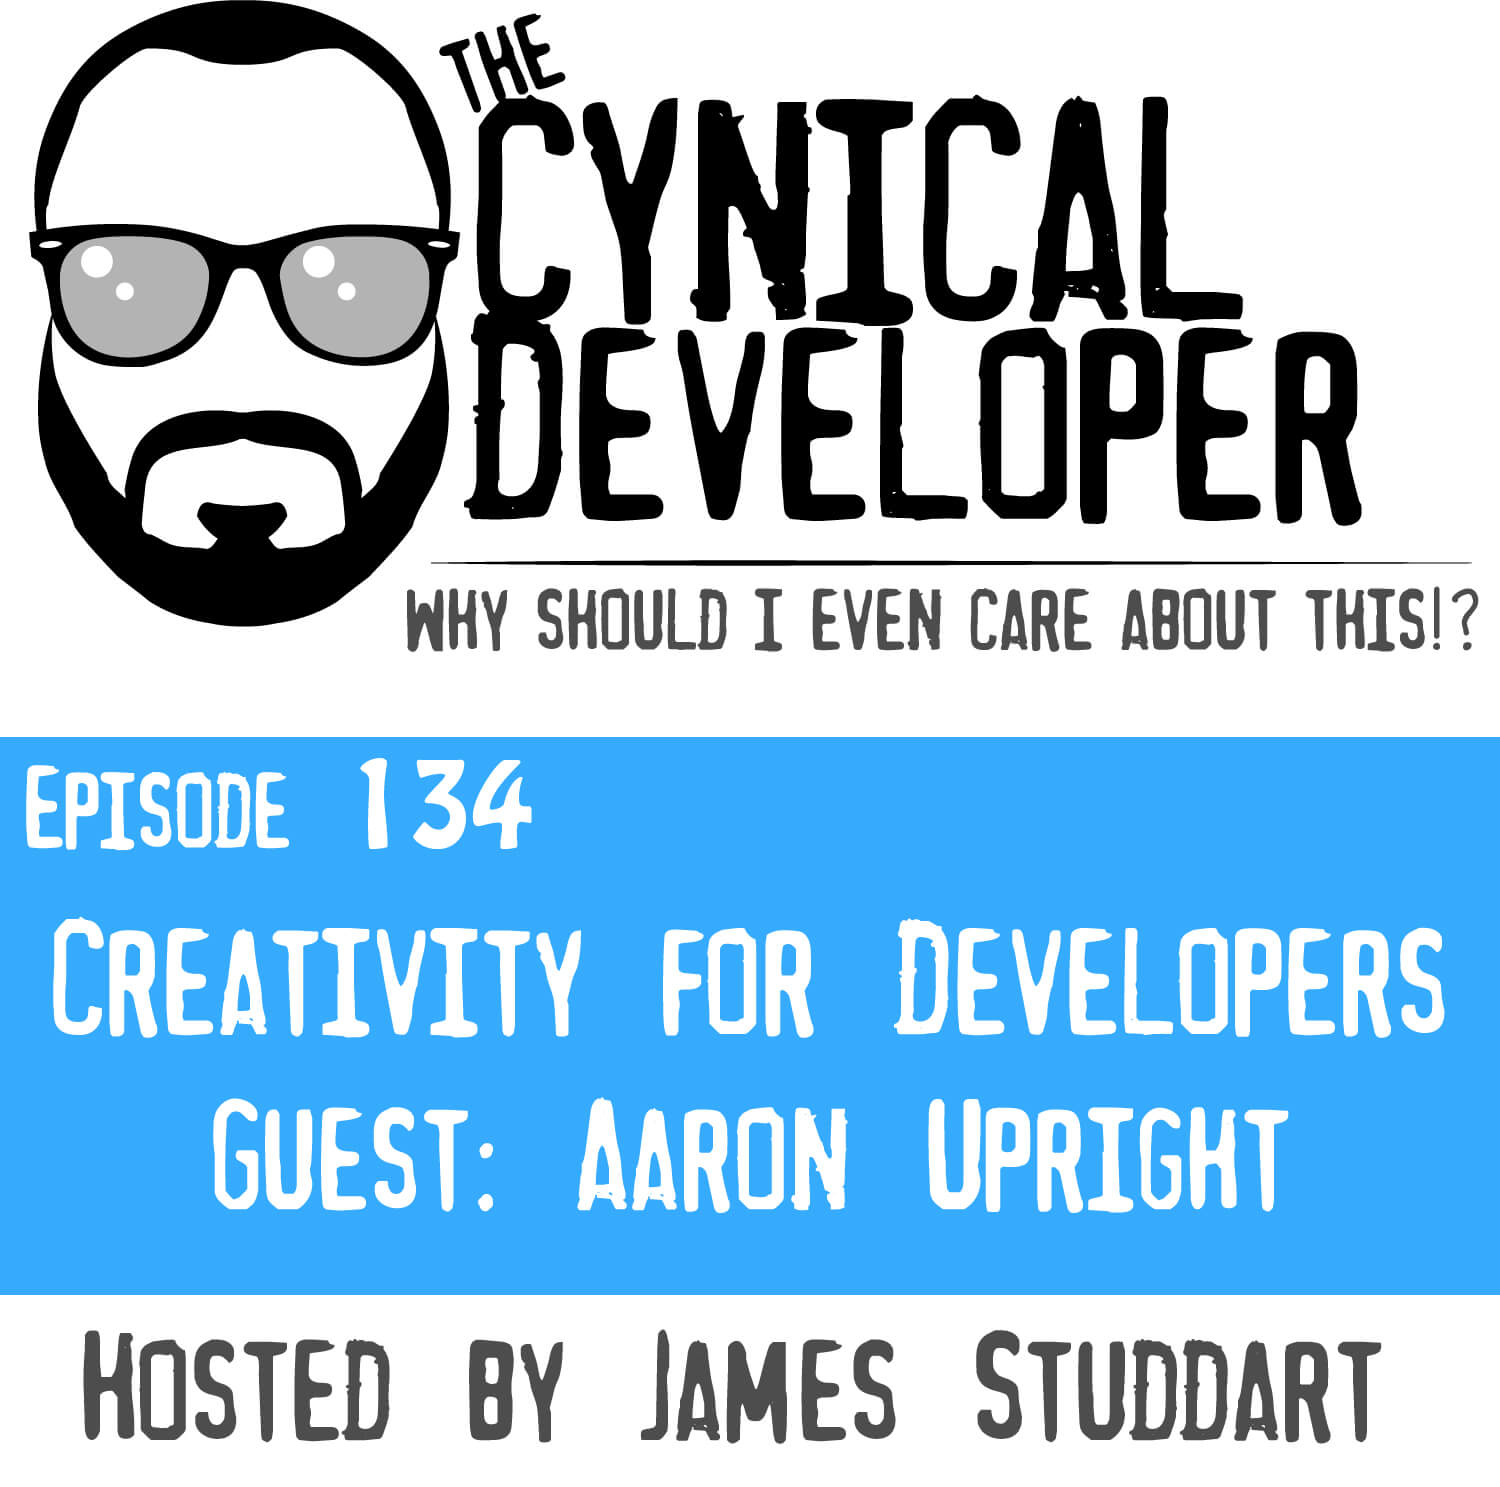 Episode 134 - Creativity for Developers